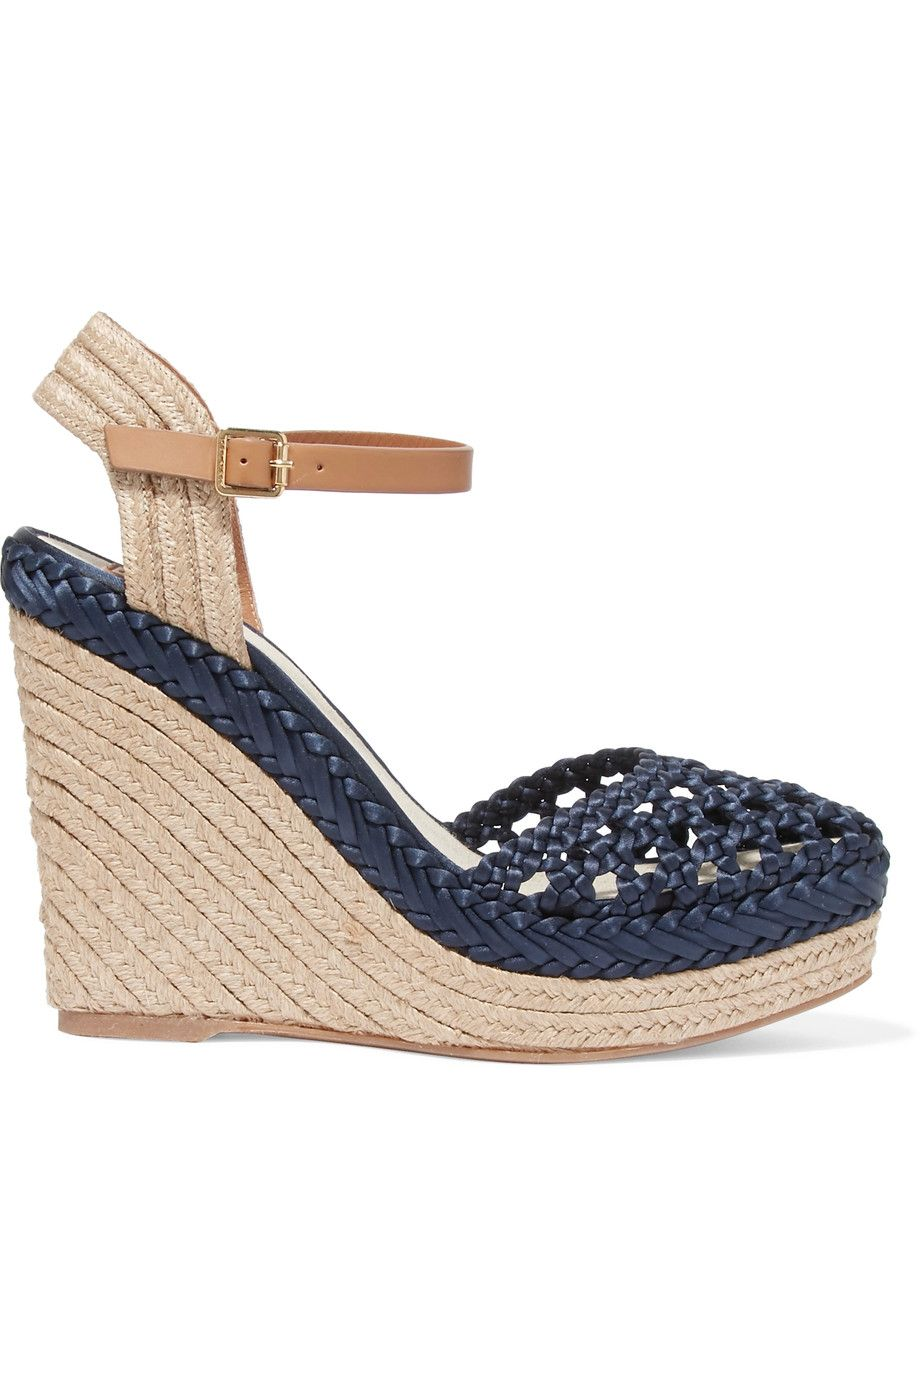 6325c777121191 TORY BURCH Solemar Leather-Trimmed Woven Satin Wedge Sandals.  toryburch   shoes  sandals